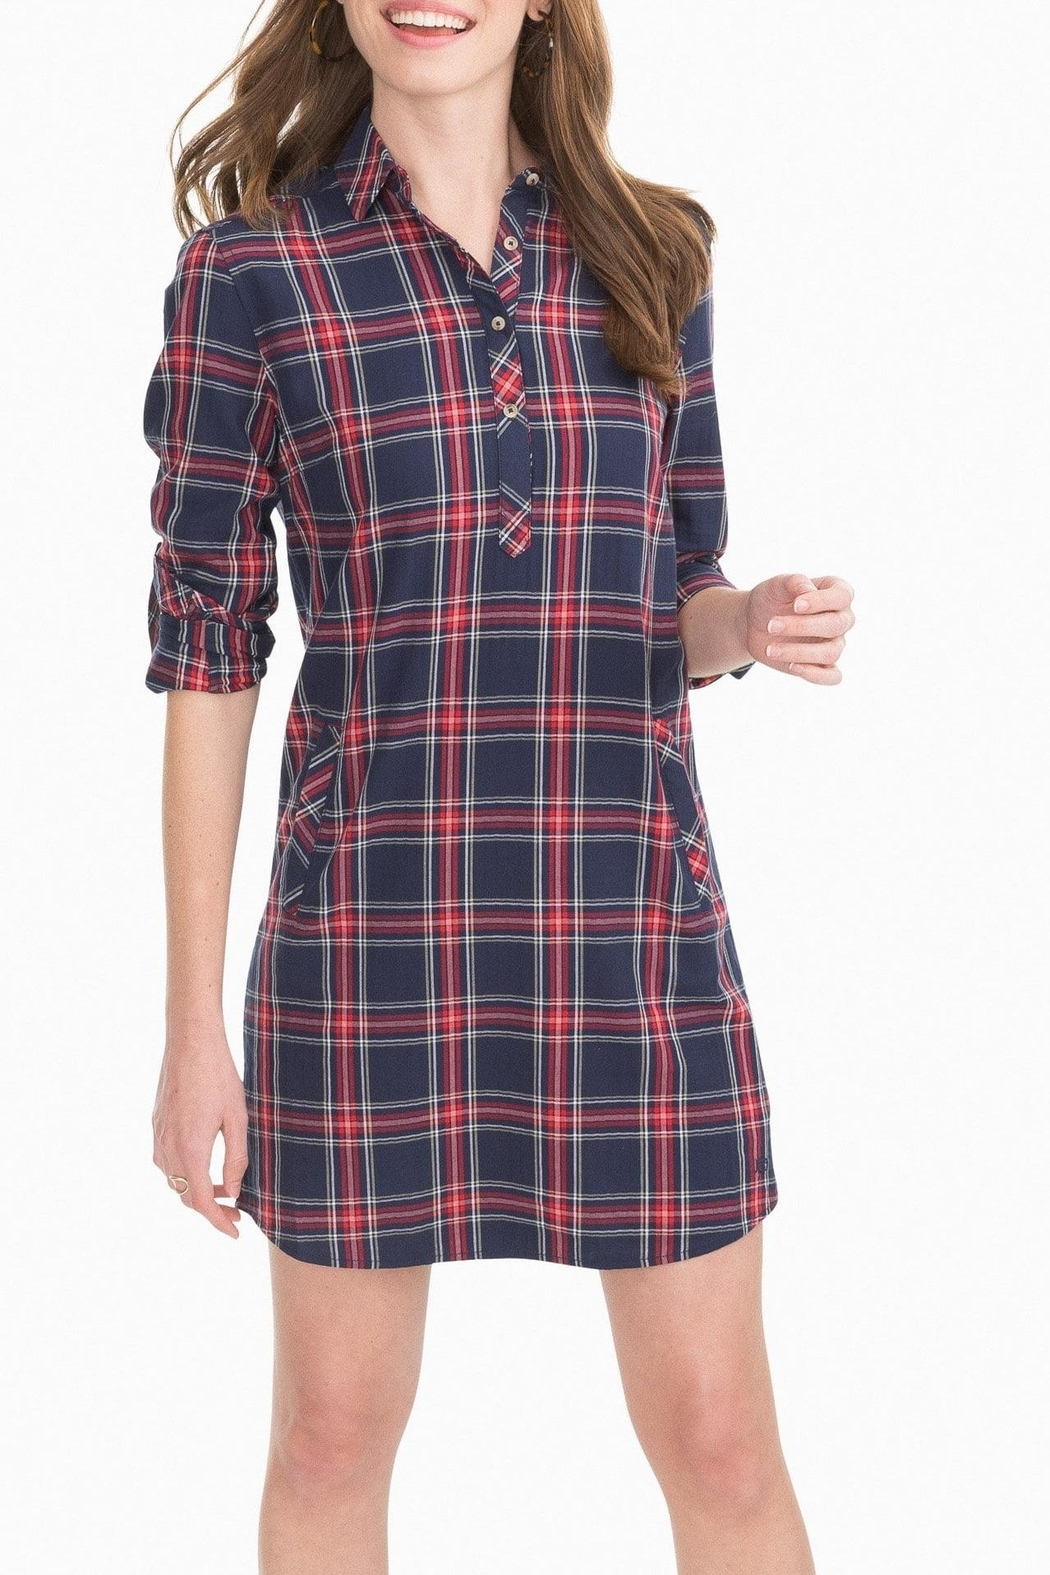 Lilly Pulitzer Alyssa Plaid Shirtdress - Front Cropped Image